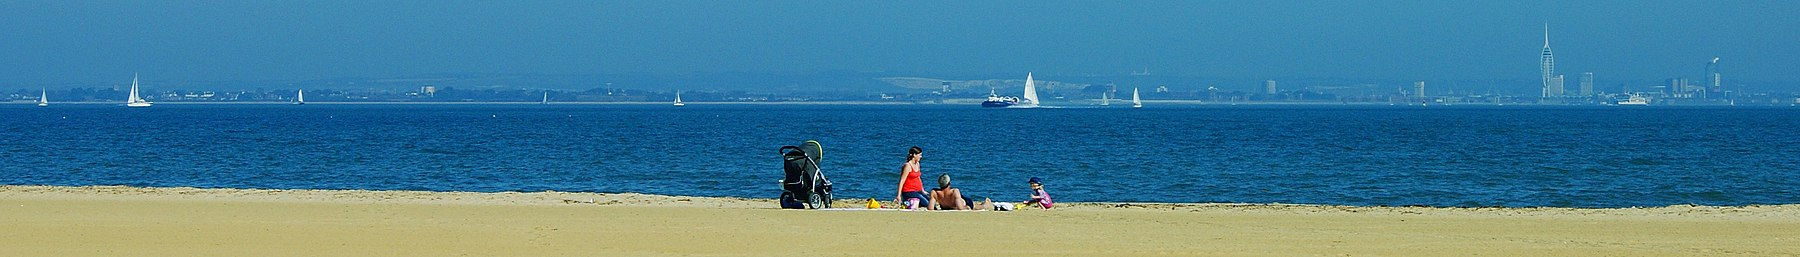 The beach at Ryde on the Isle of Wight. The tower visible is the Spinnaker in Portsmouth.